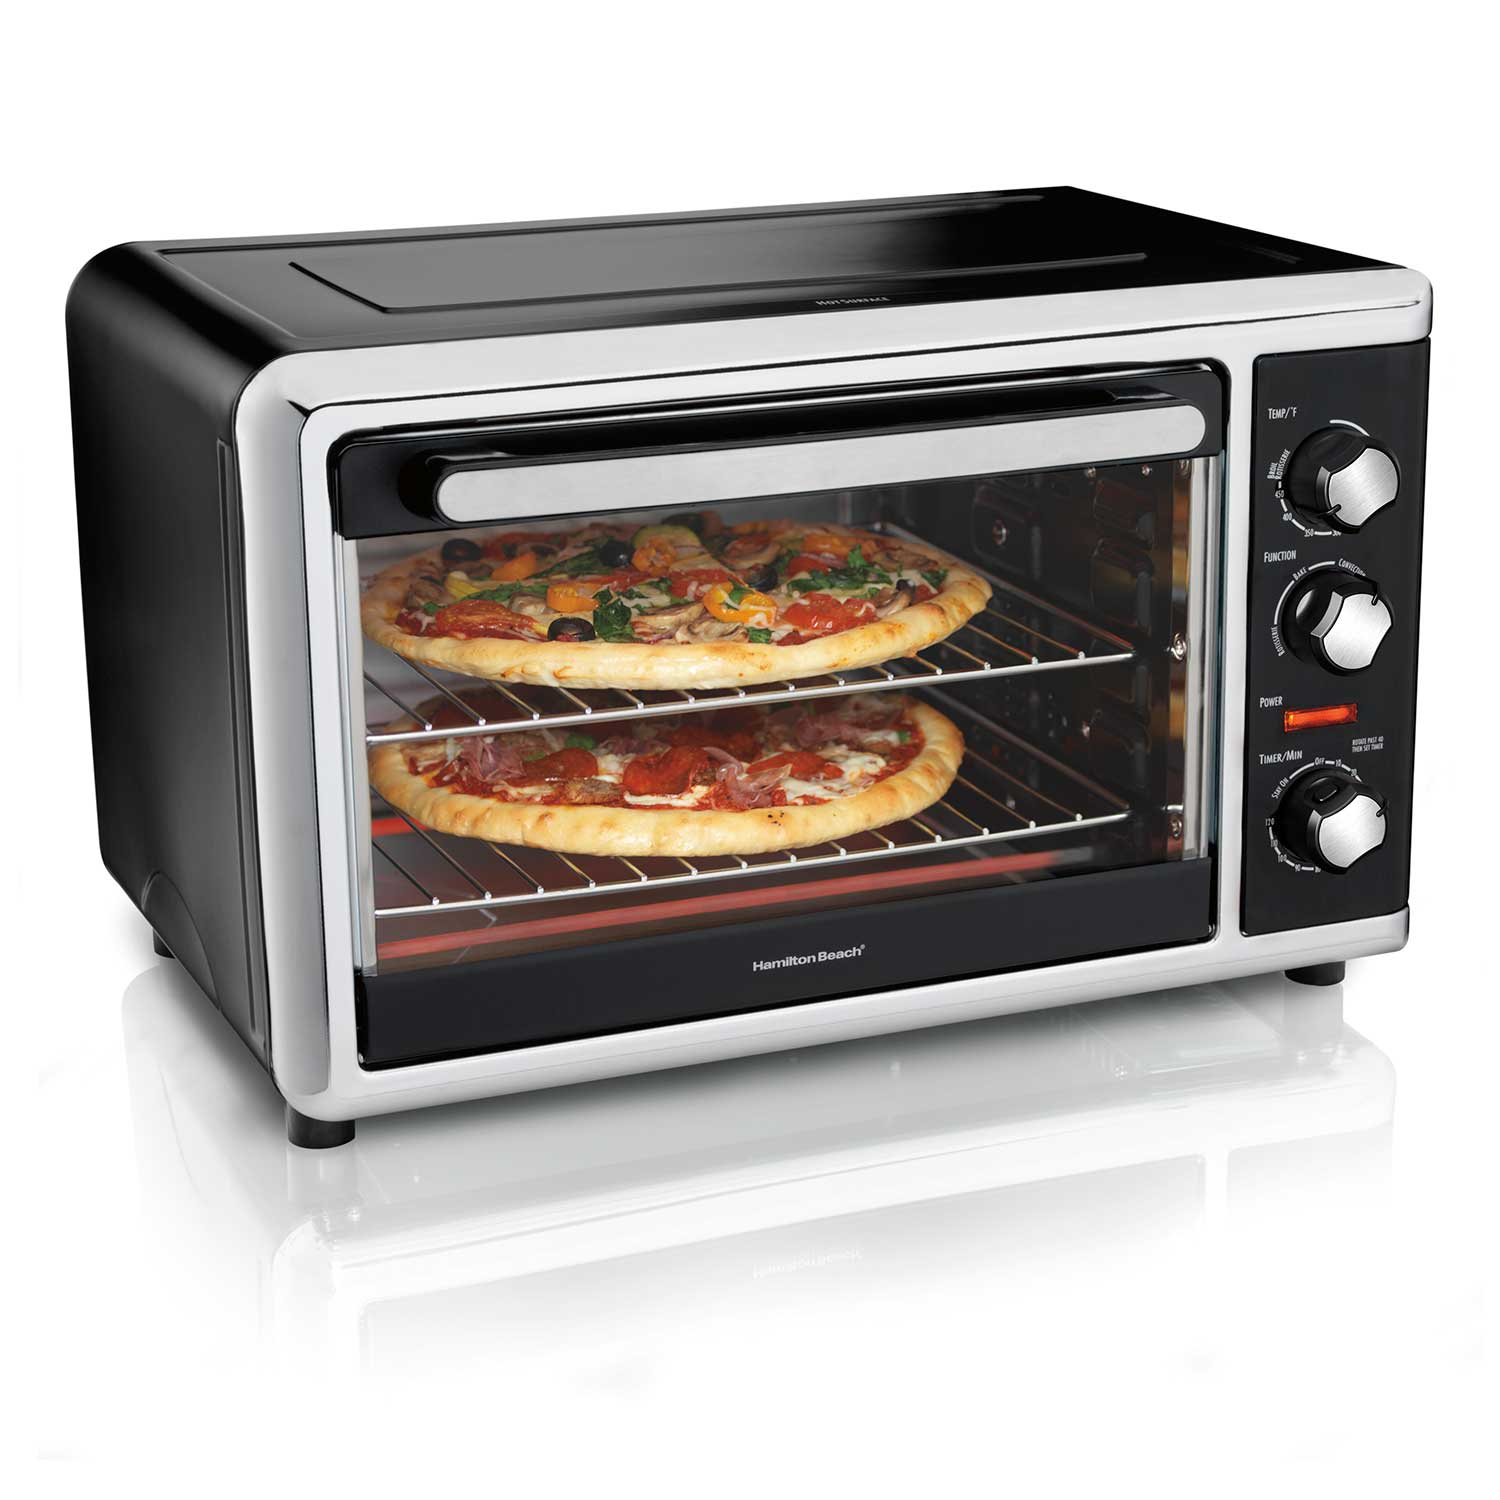 Countertop Oven with Convection and Rotisserie (Black) (31105D)